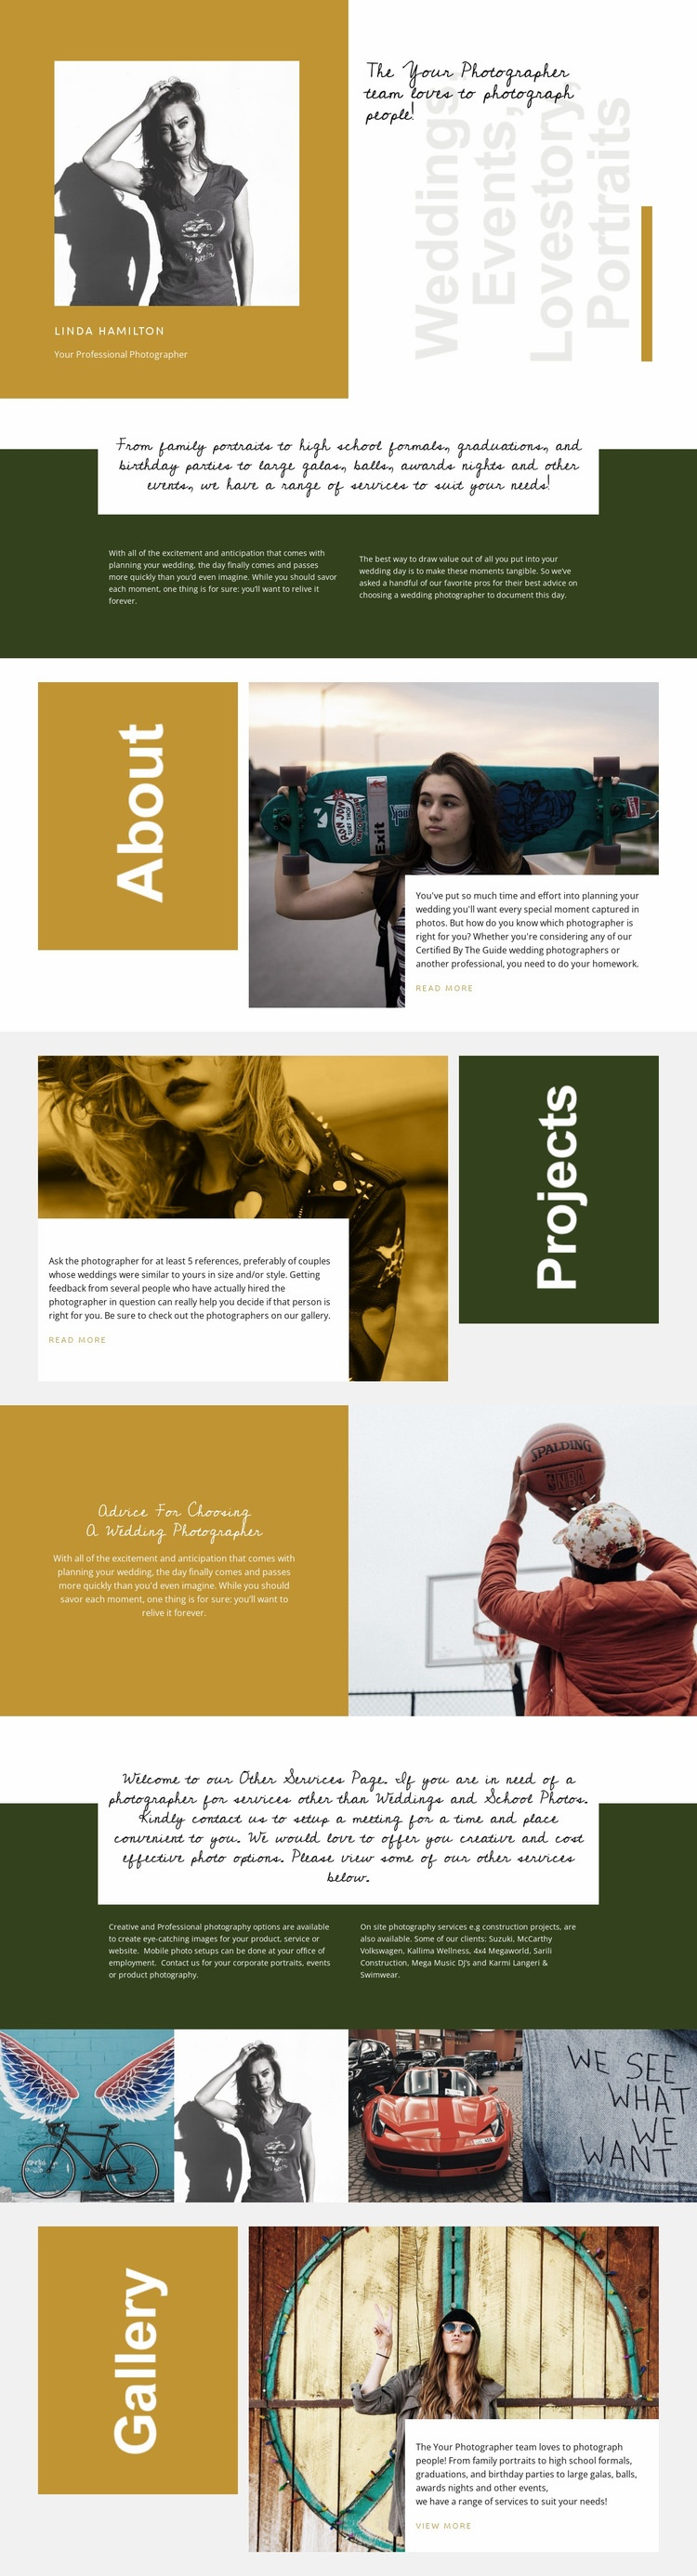 Fashion photography courses Html Code Example